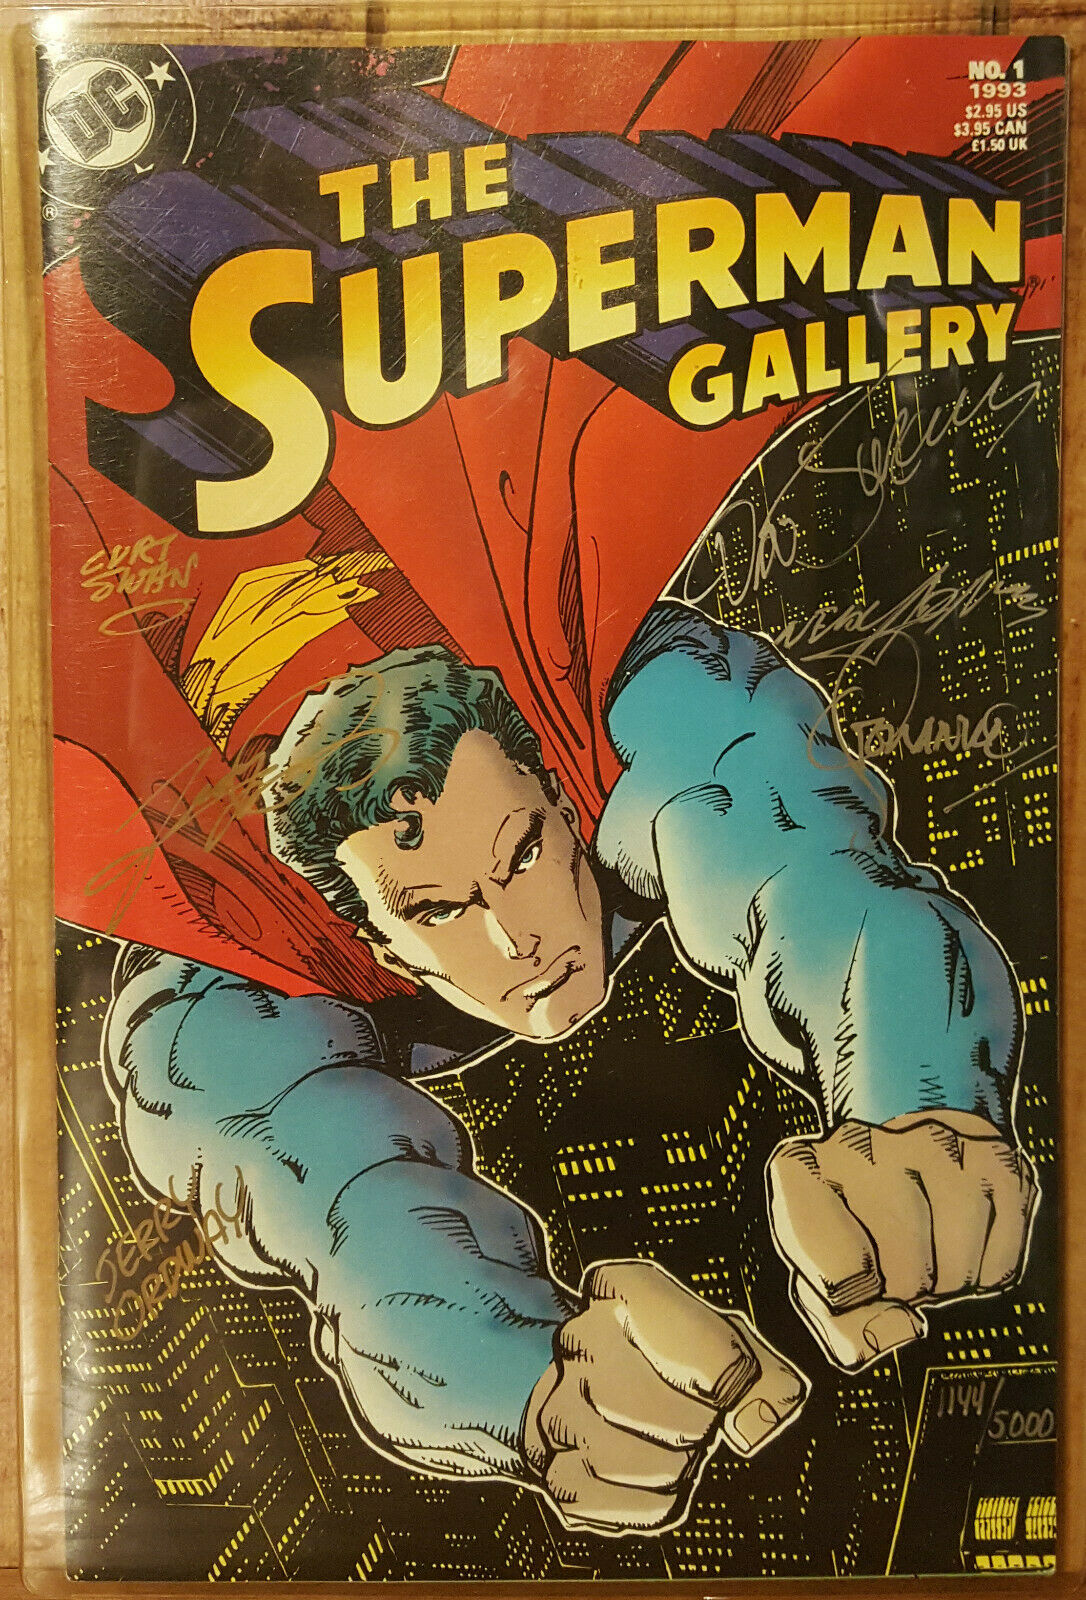 THE SUPERMAN GALLERY #1 COA # 1144 SIGNED BY NEAL ADAMS GEORGE PEREZ CURT SWAN